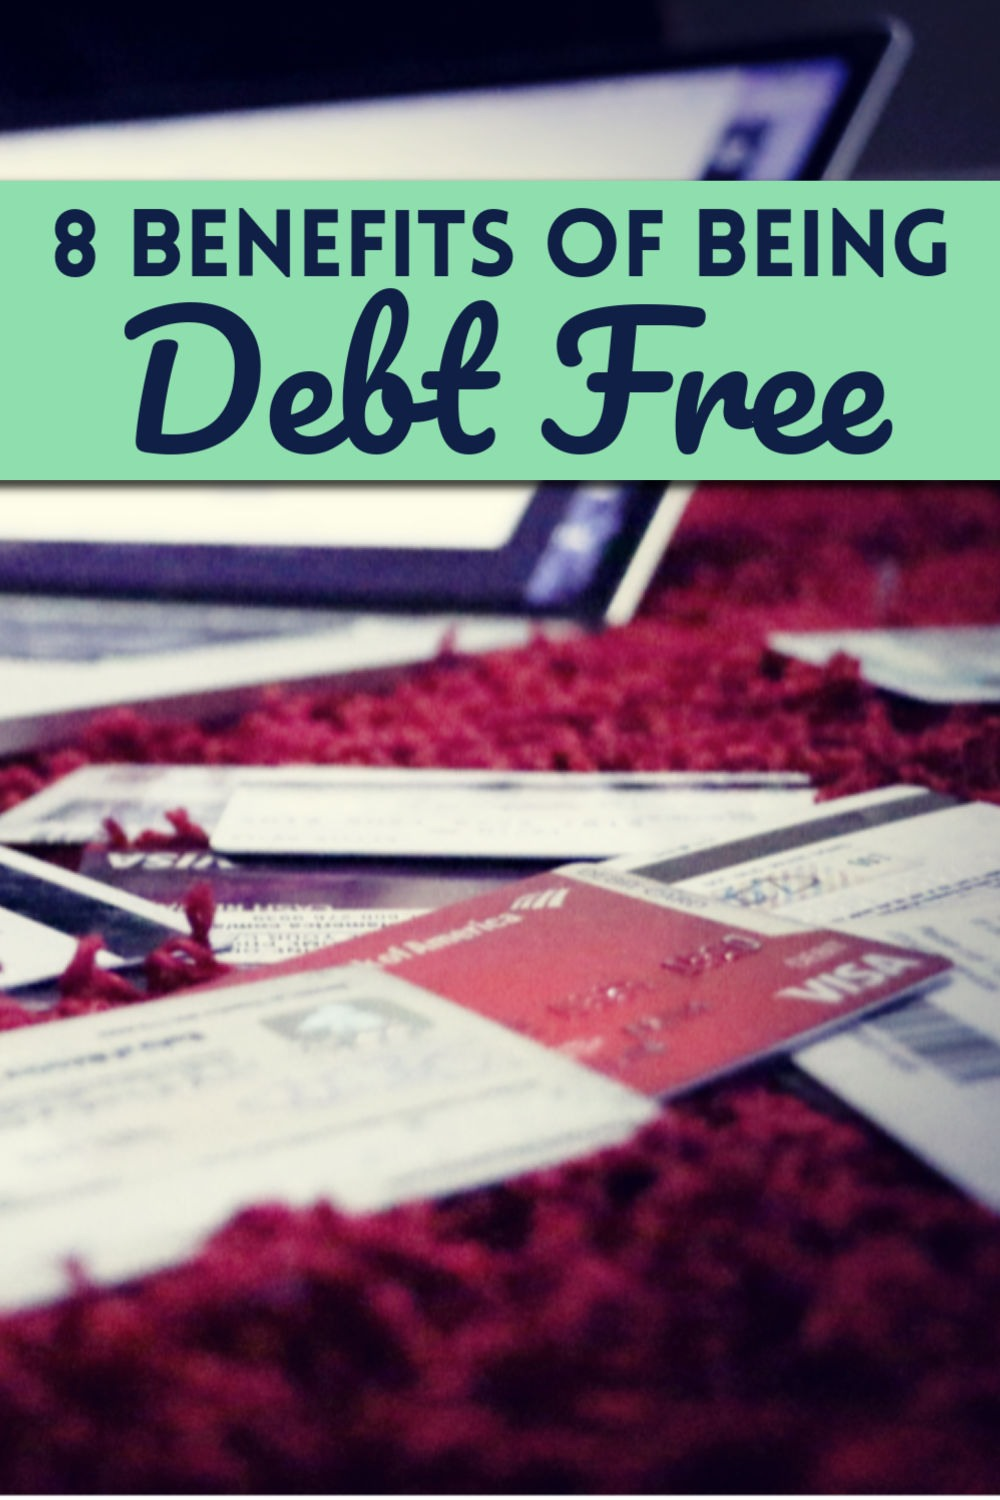 The Benefits of Being Debt Free by PositivelyFrugal.com